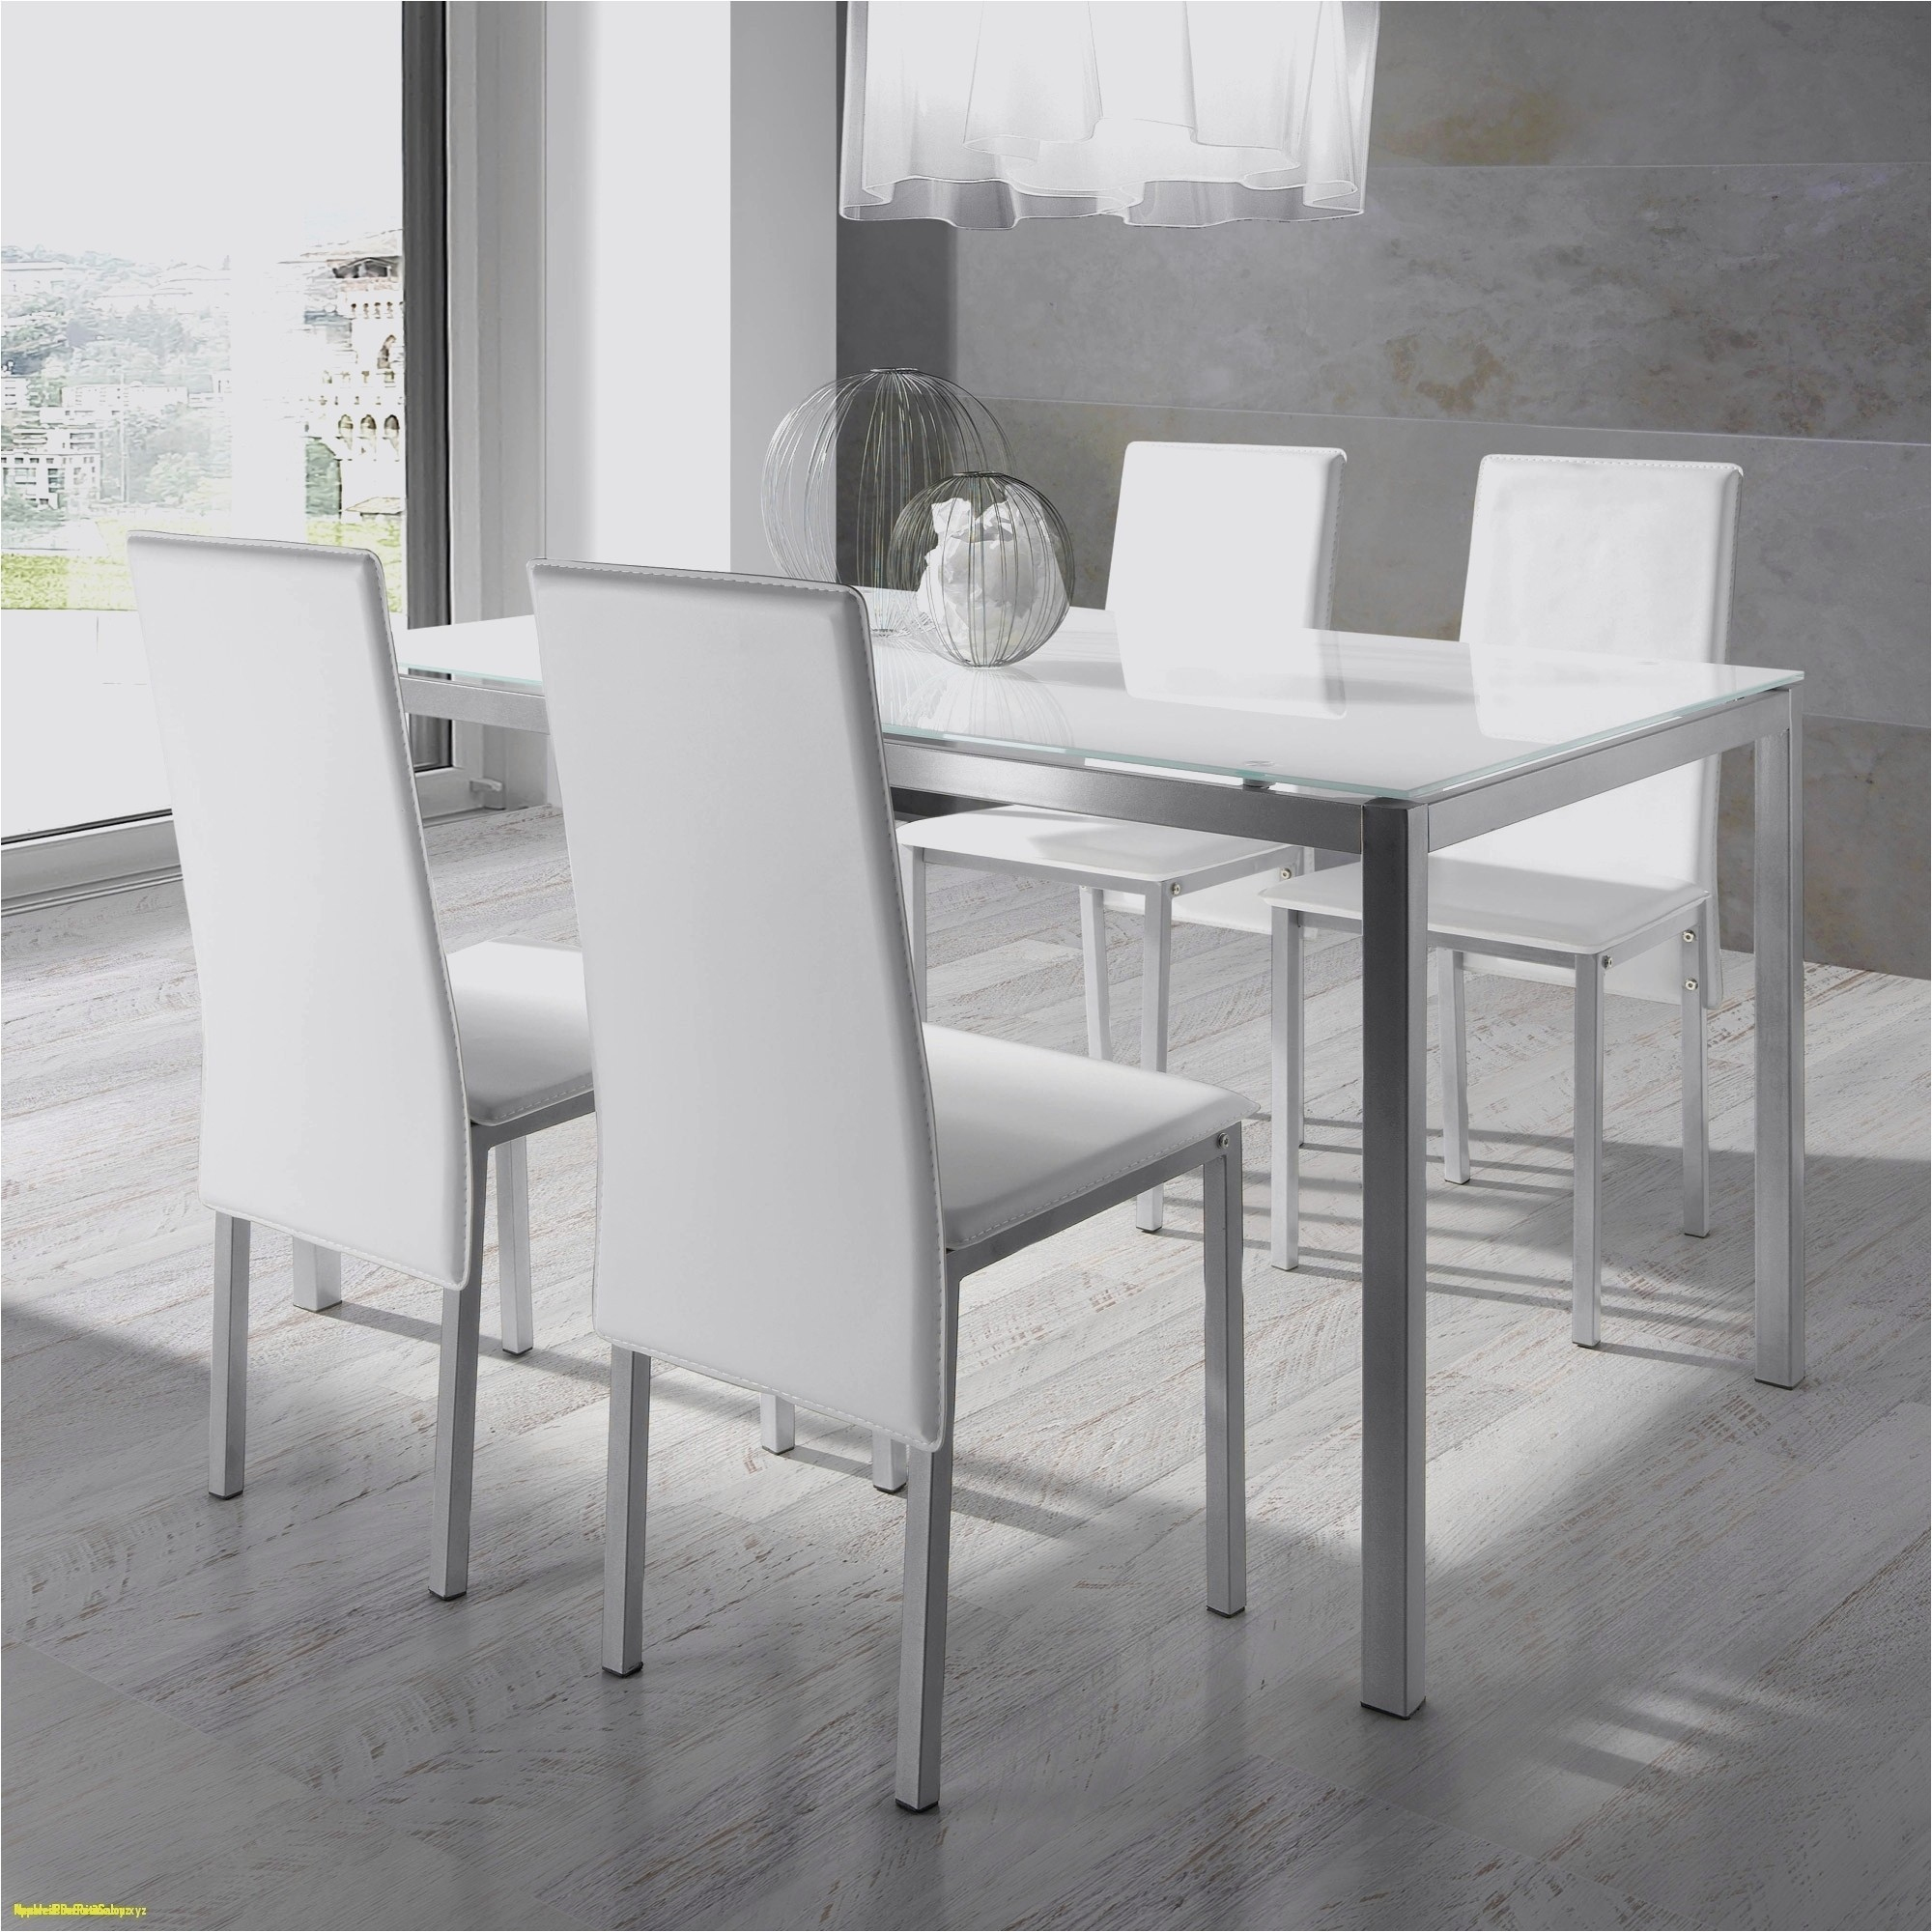 But Salle A Manger Inspirant Collection 30 Frais Chaise Salle A Manger